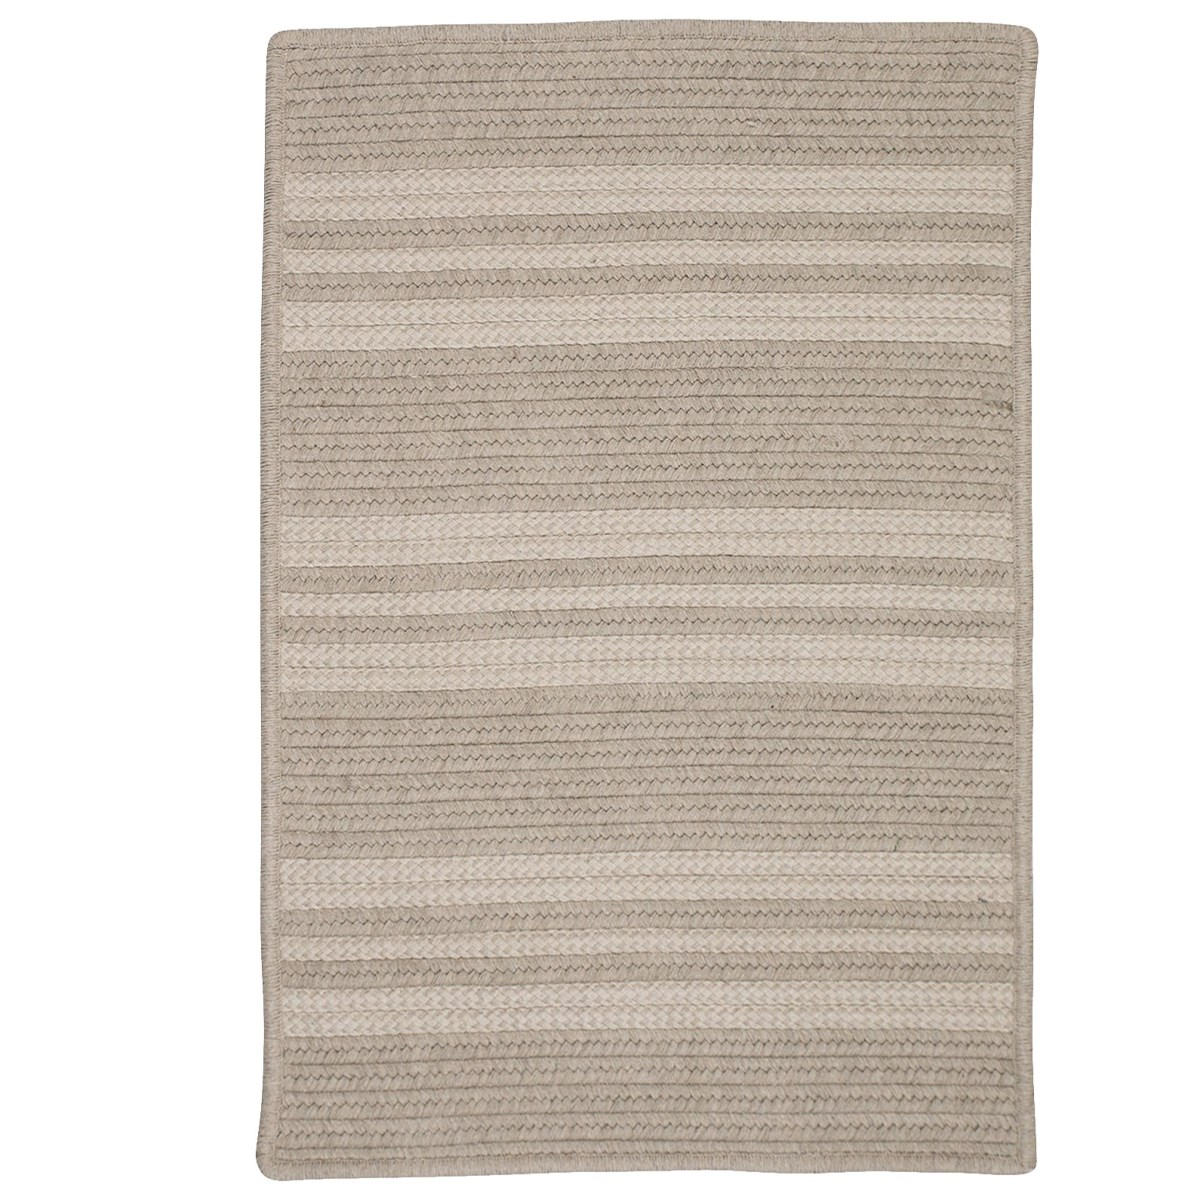 Sunbrella Southport Stripe Ash Outdoor Braided Rectangular Rugs